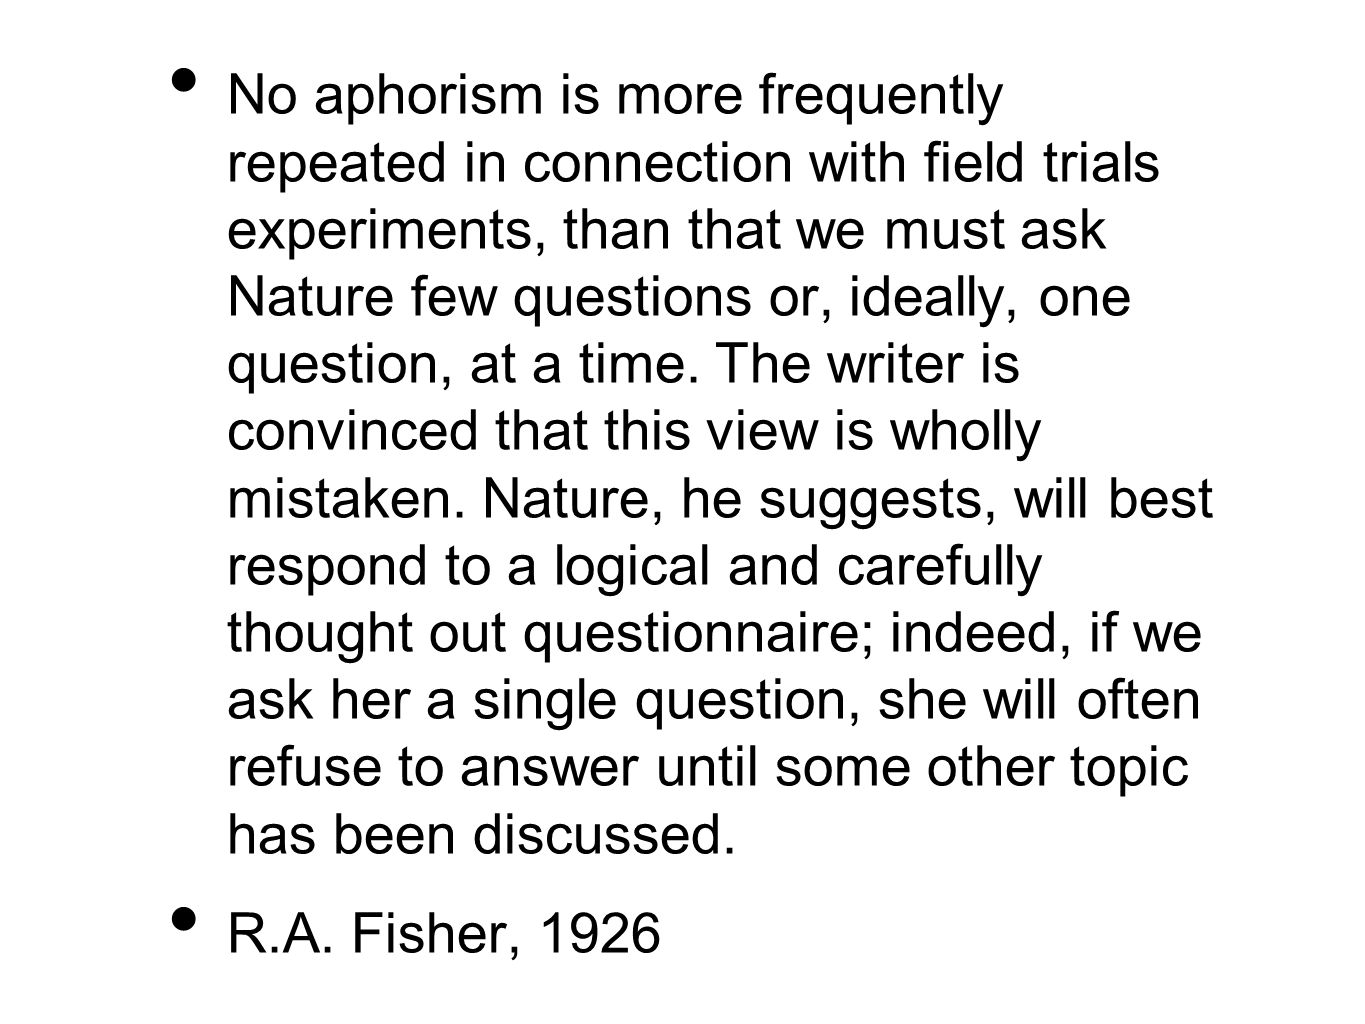 No aphorism is more frequently repeated in connection with field trials experiments, than that we must ask Nature few questions or, ideally, one question, at a time. The writer is convinced that this view is wholly mistaken. Nature, he suggests, will best respond to a logical and carefully thought out questionnaire; indeed, if we ask her a single question, she will often refuse to answer until some other topic has been discussed.